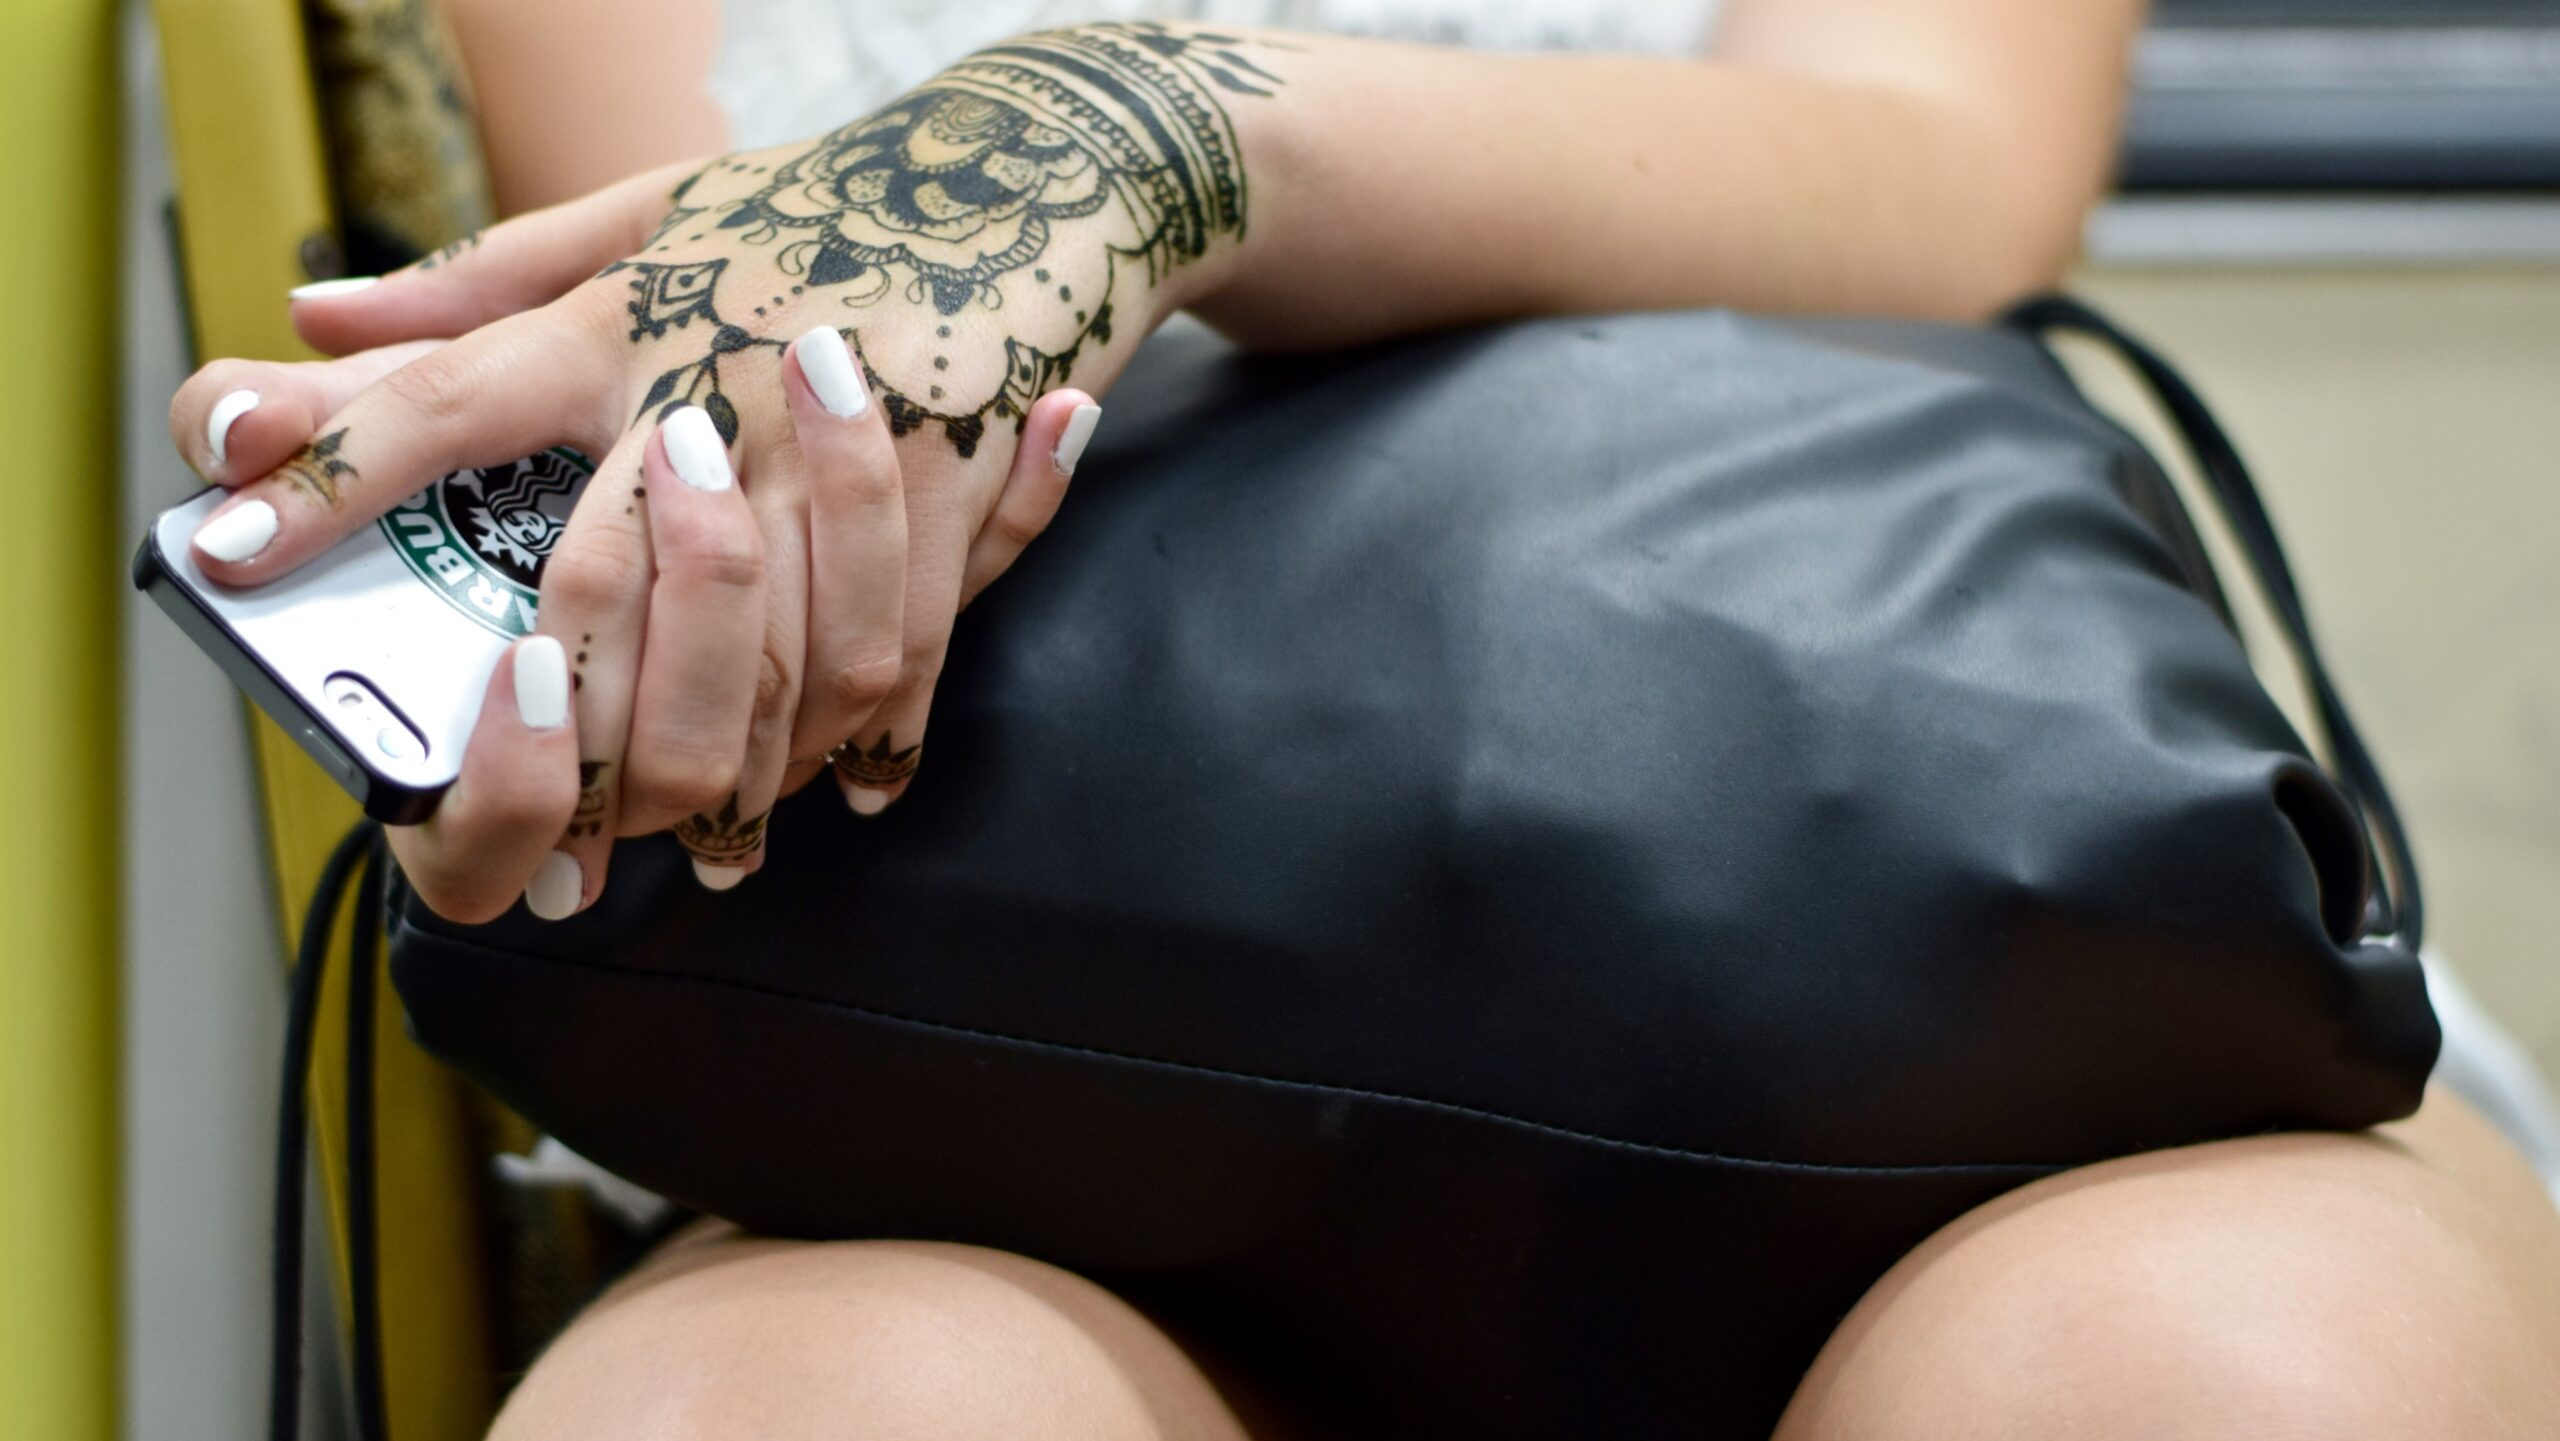 Tattoo Aftercare - How To Look After Your New Tattoo